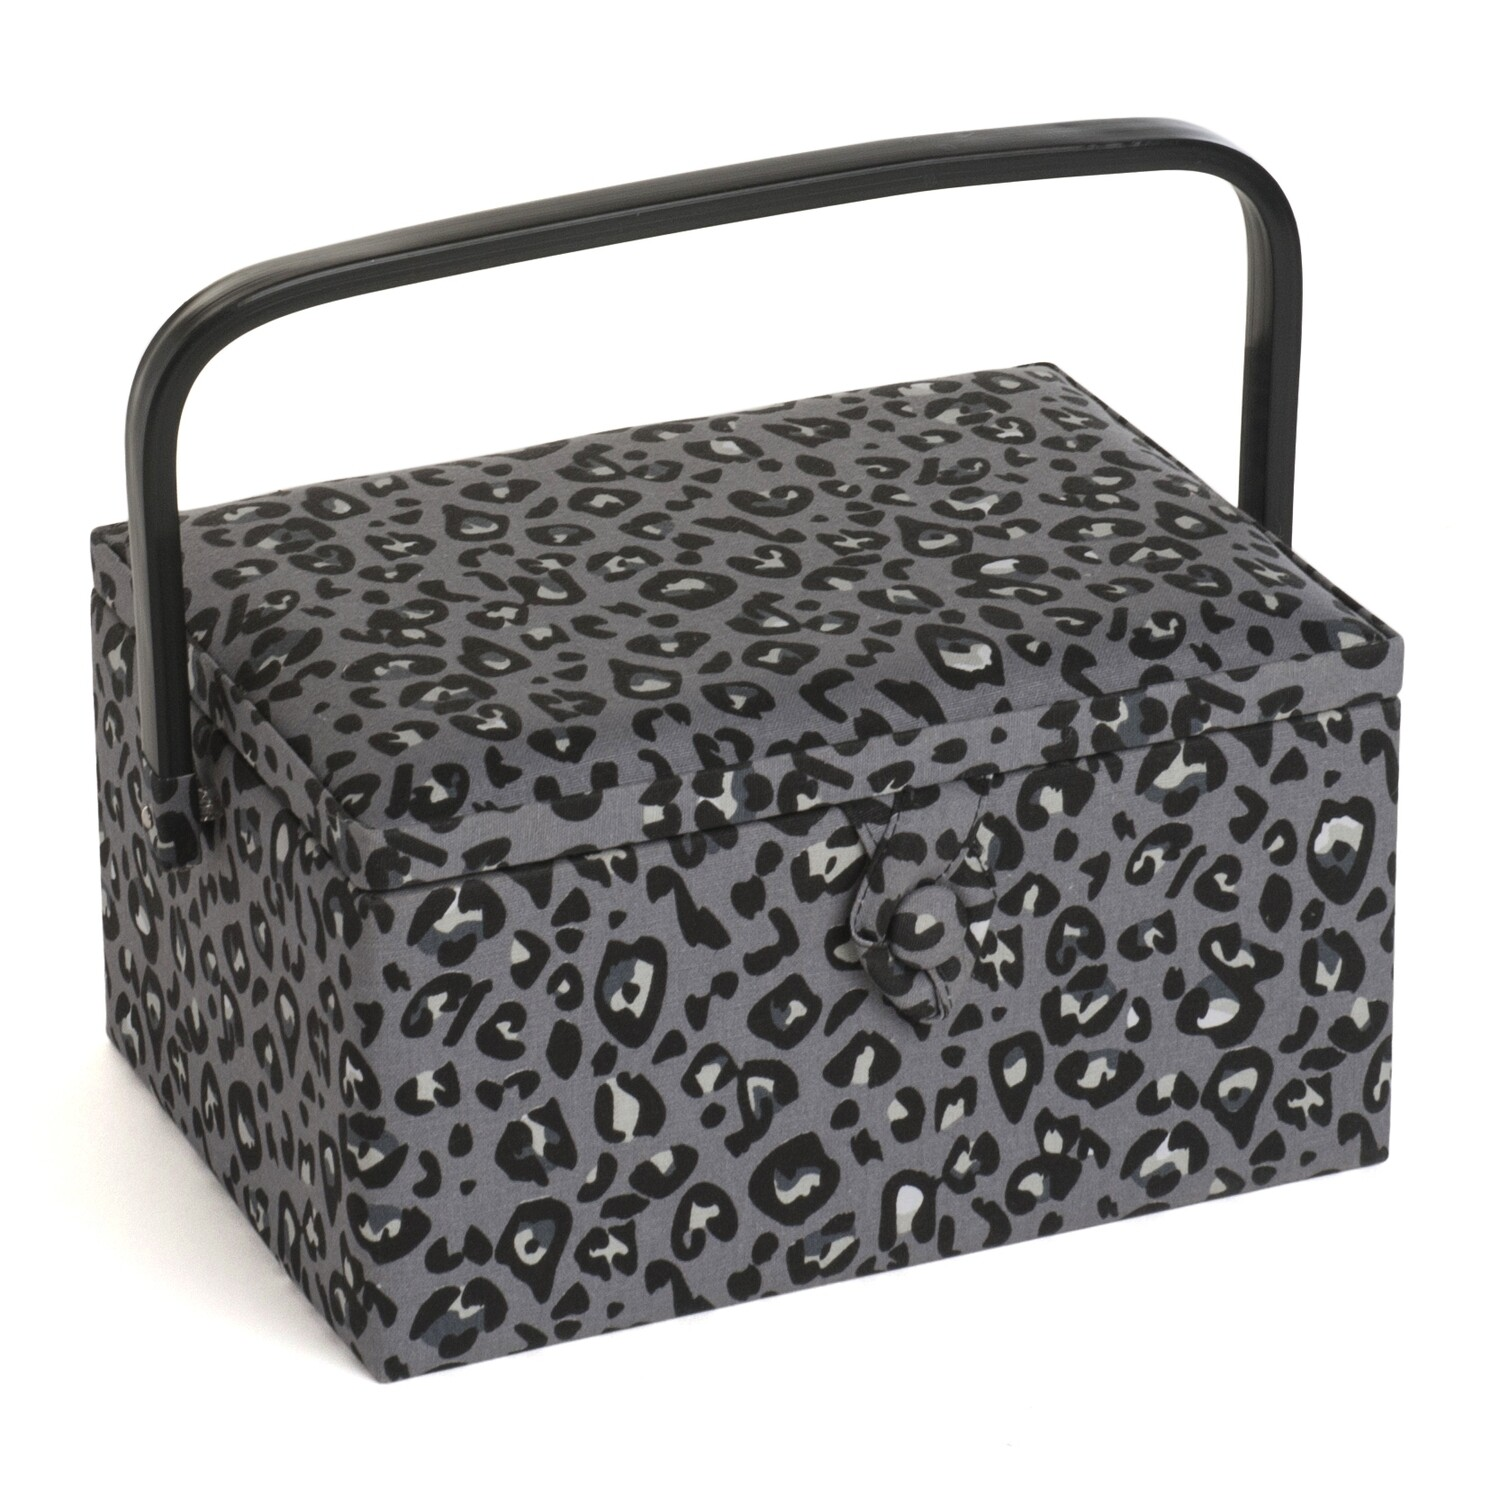 Sewing Box Medium - Leopard